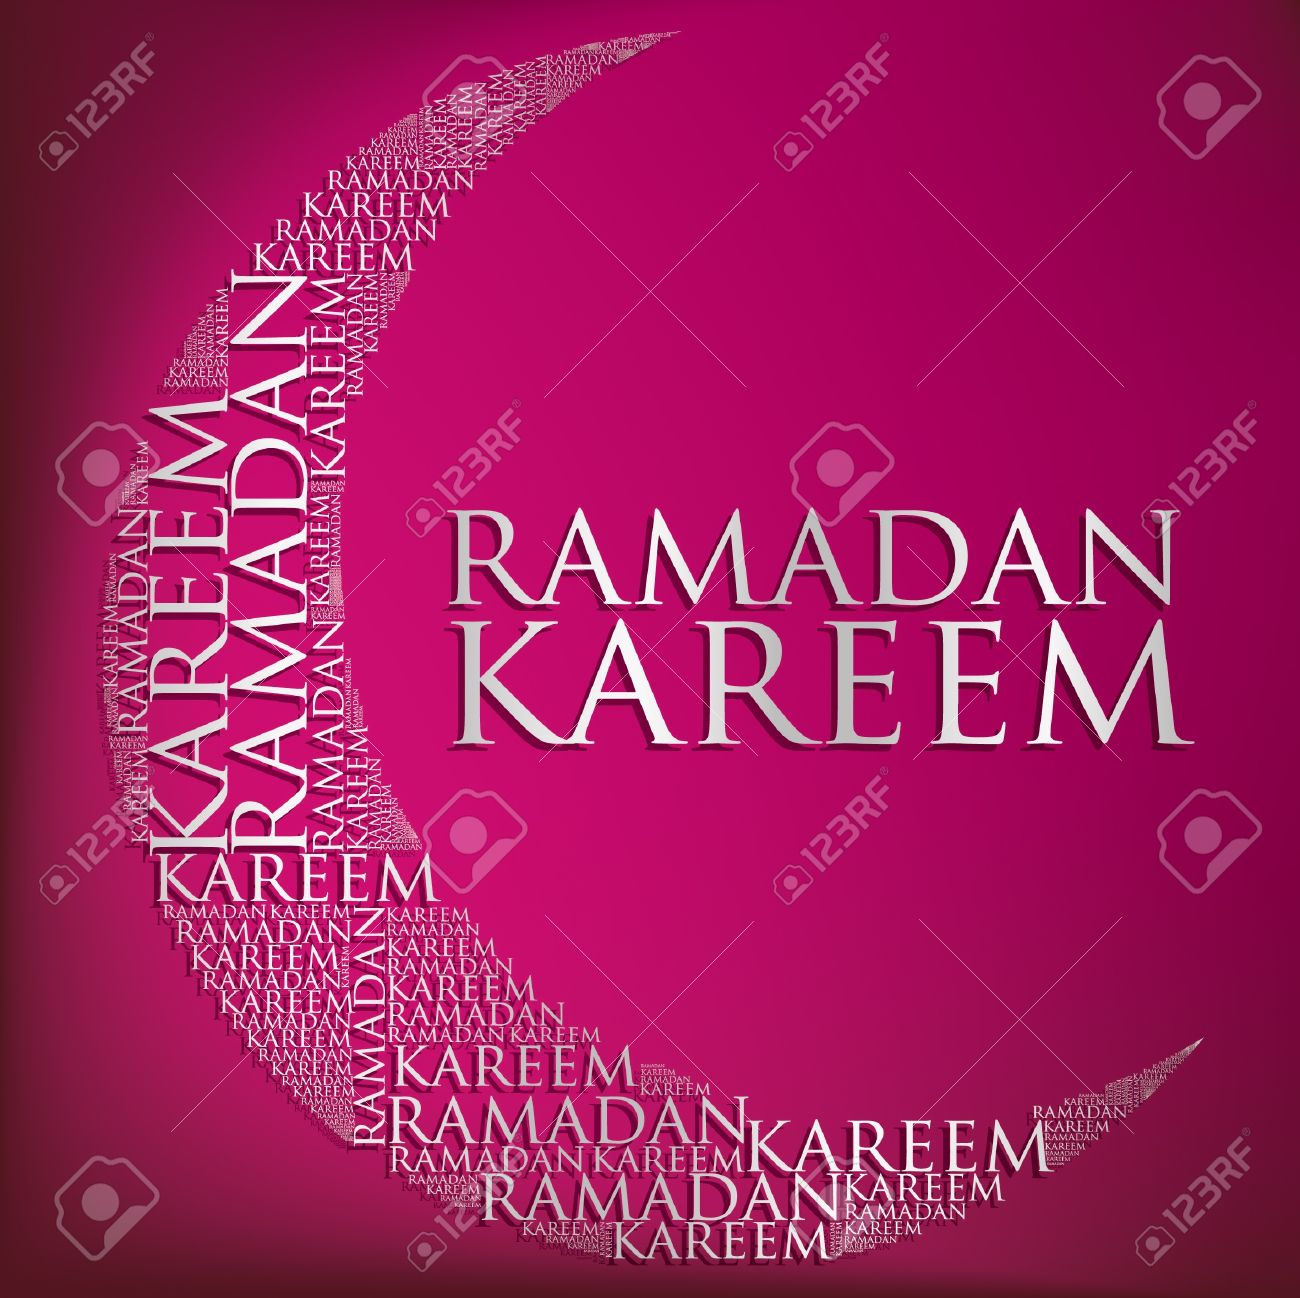 Ramadan Kareem 2018 Top 25 Ramadan Kareem Beautiful Greetings Cards